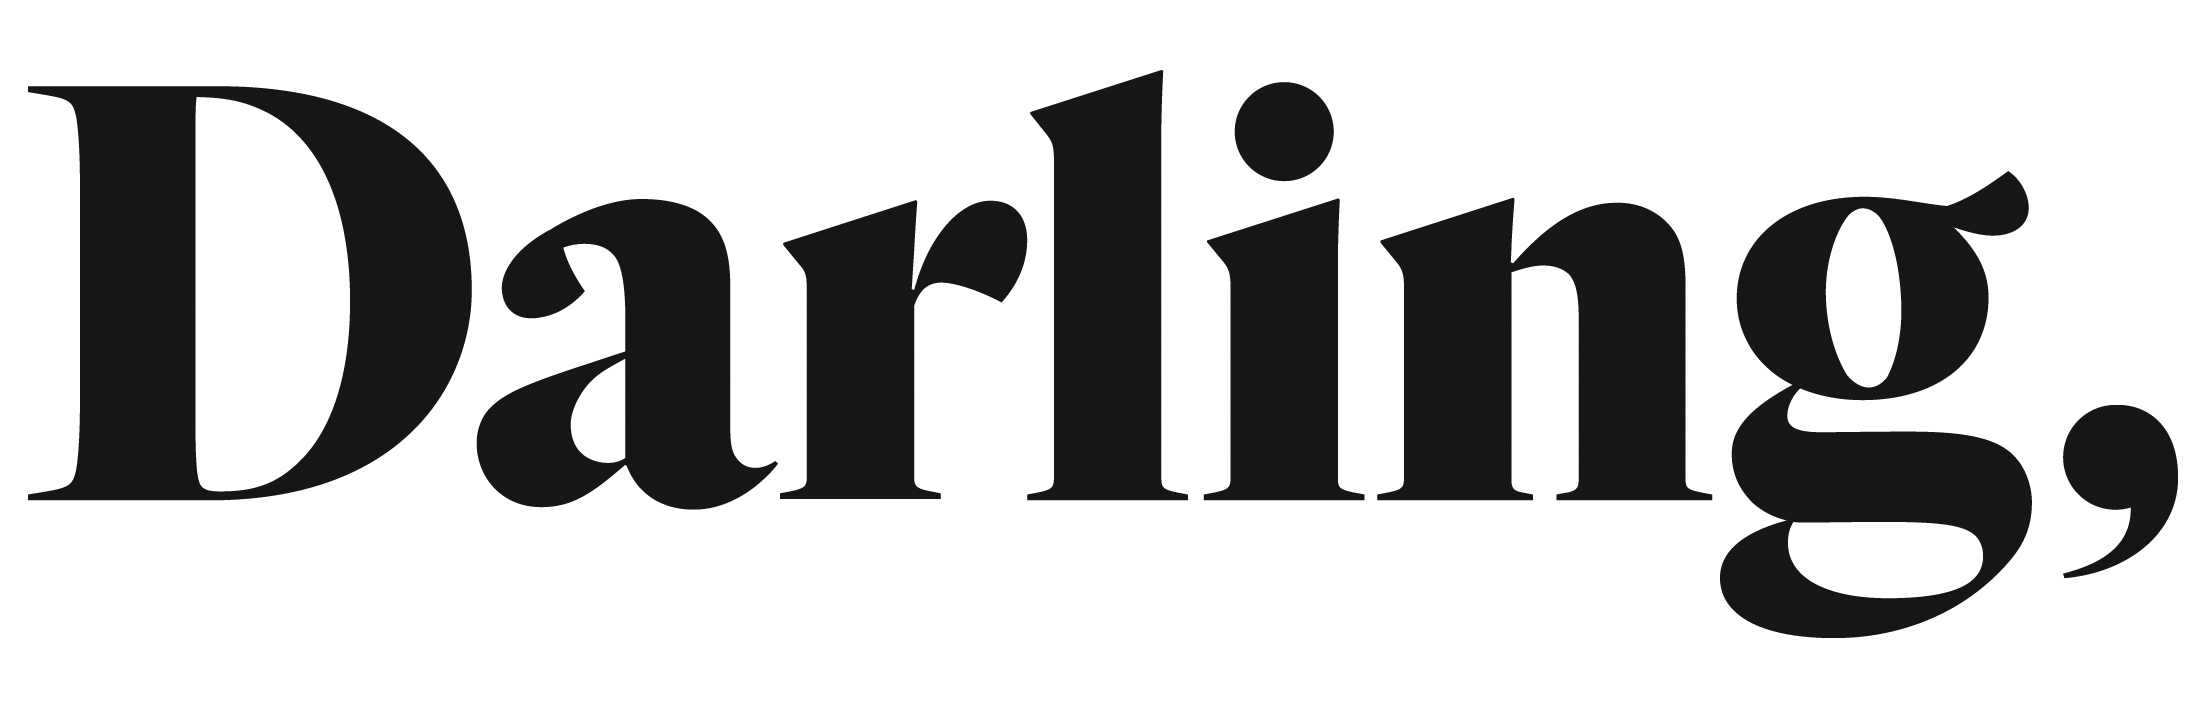 Darling-Jan2018-Masthead-Black copy.png